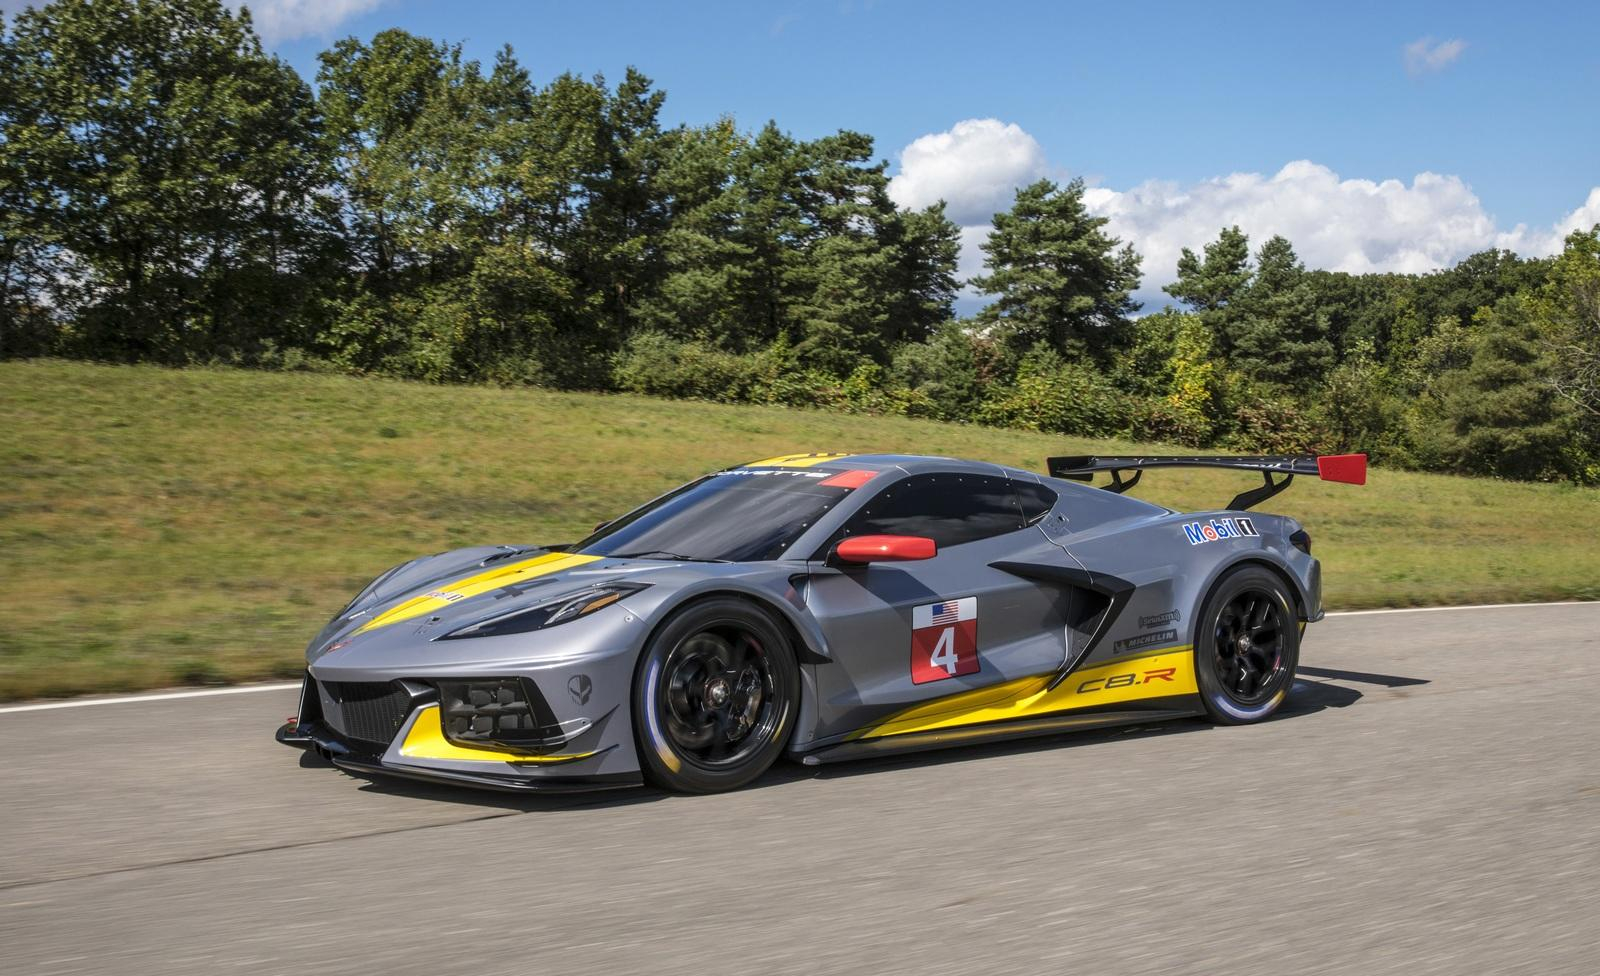 2021 Chevrolet Corvette Zr1 Photos, Parts, Racing | 2022 Chevy